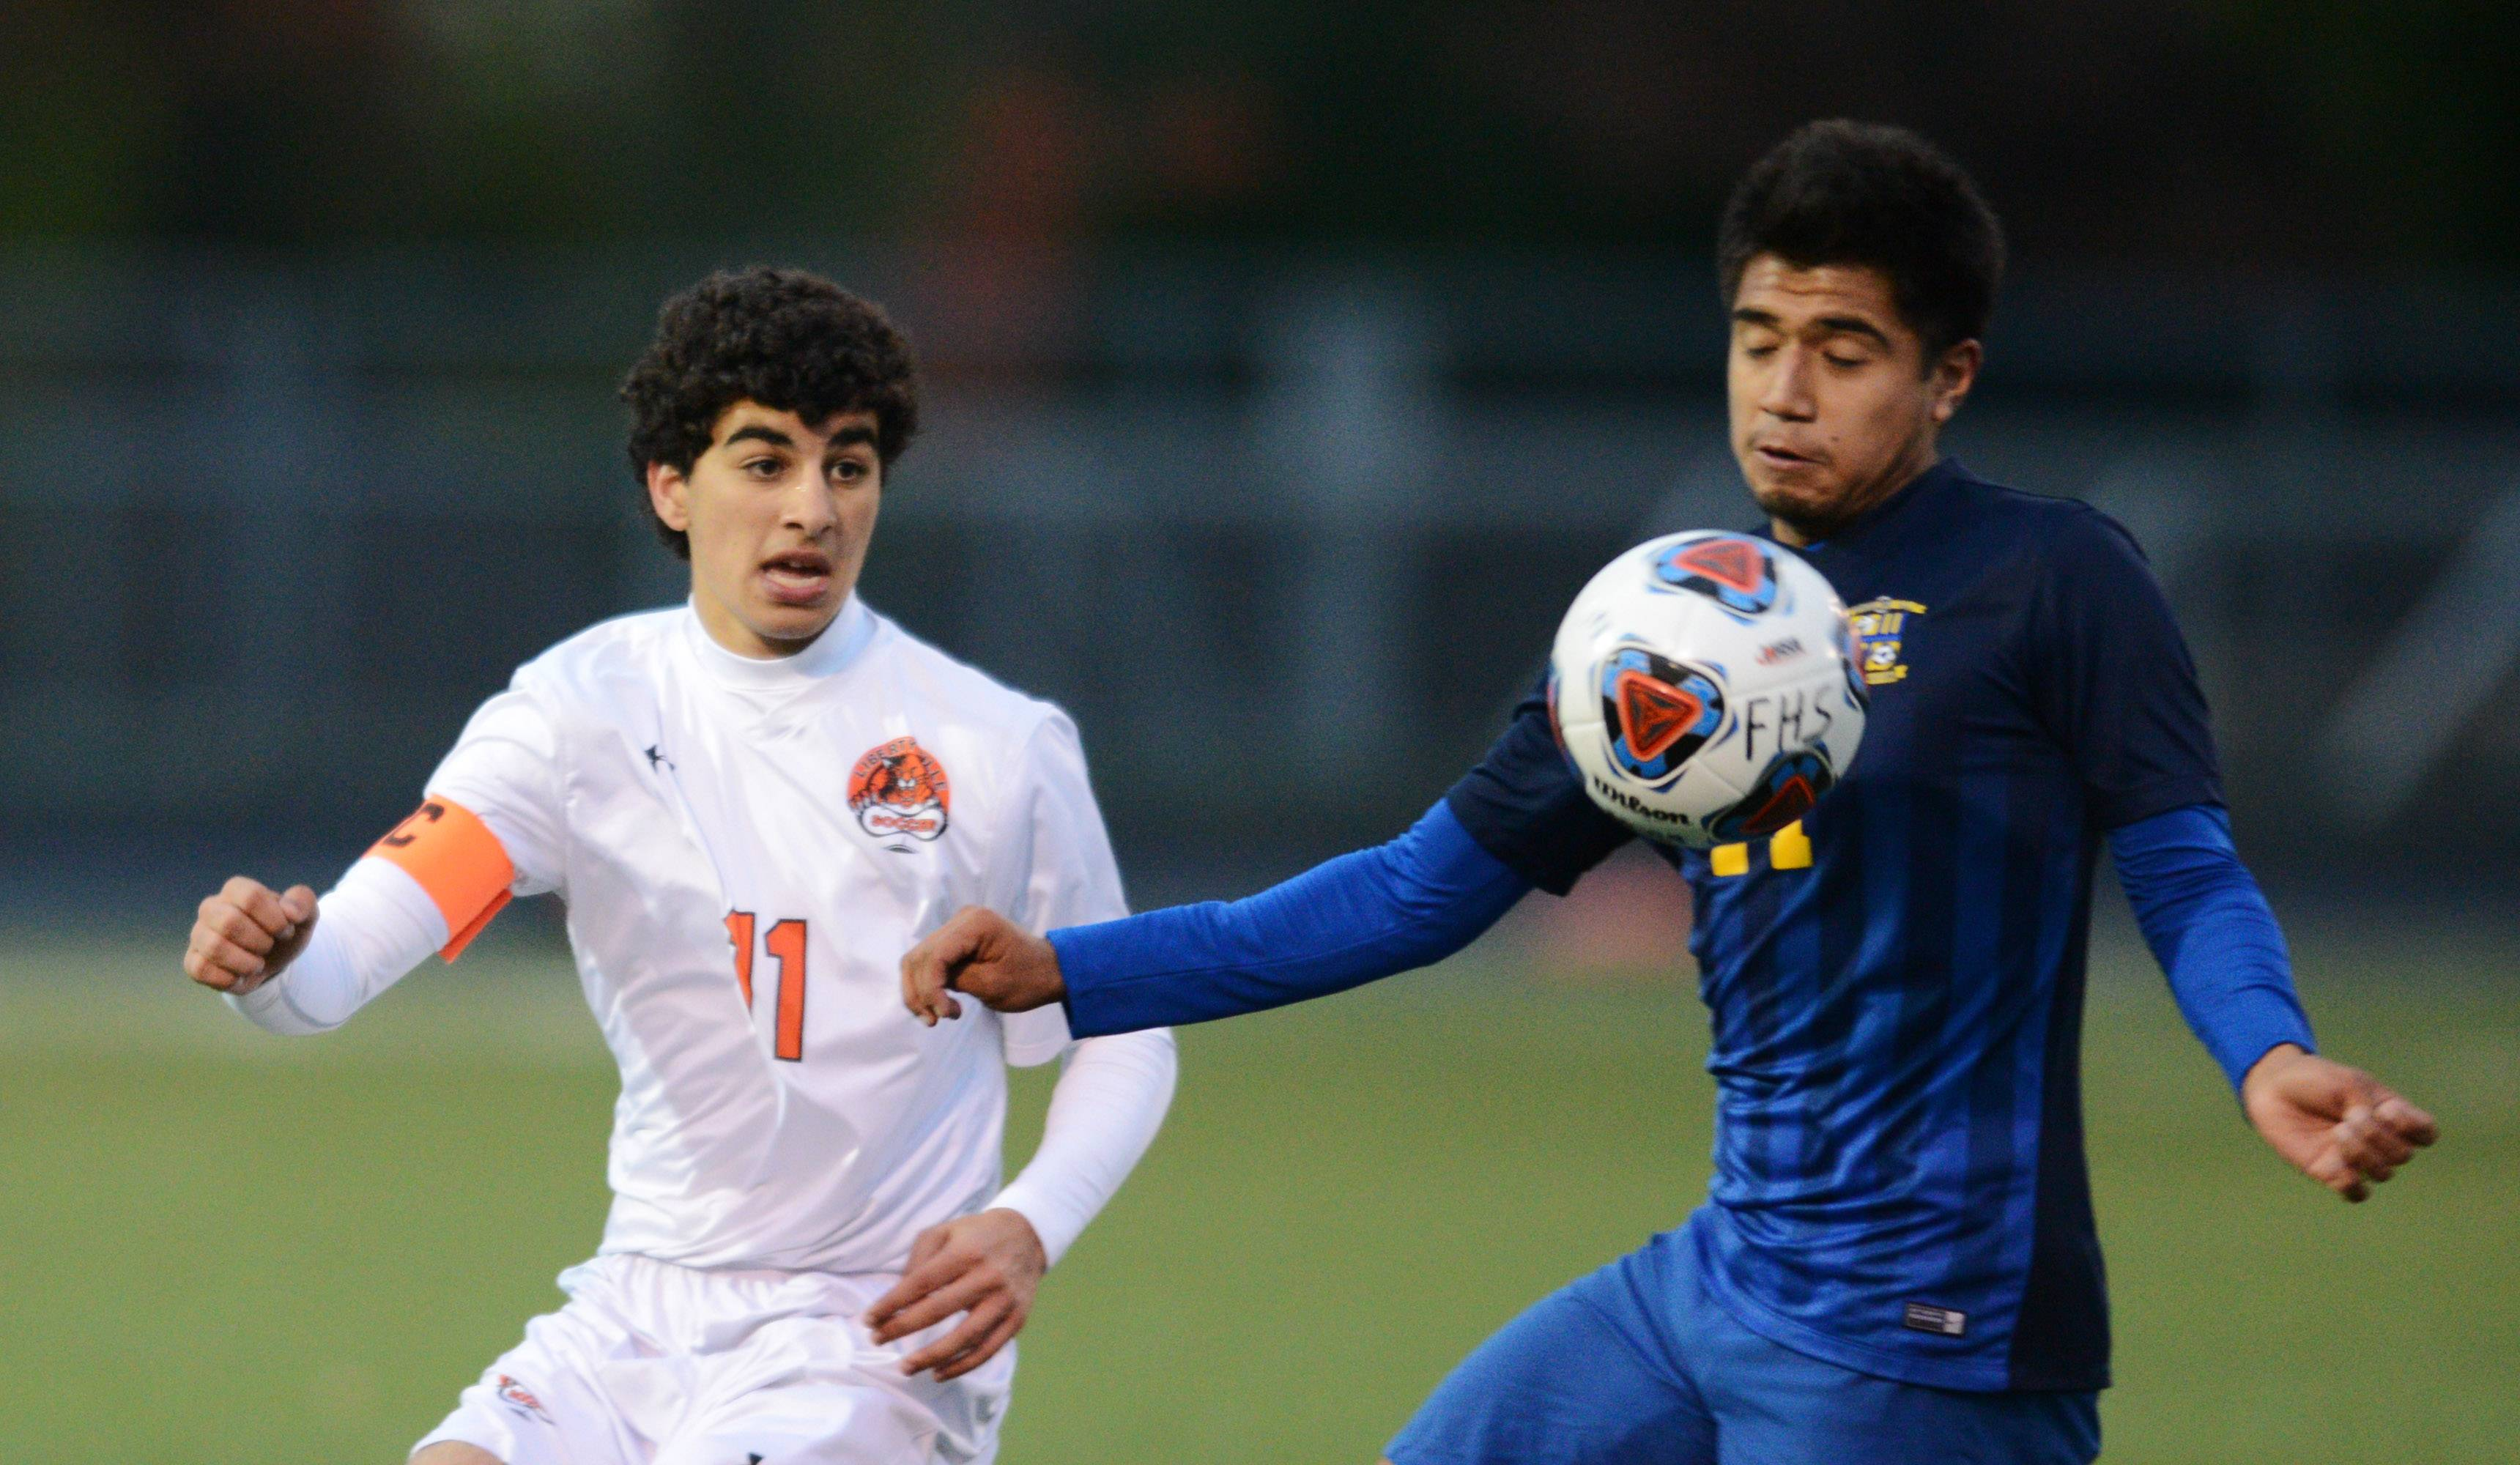 Wheeling's Robert Cruz, right, keeps the ball in front of himself as Libertyville's Riley Hoff closes in during the Fremd boys soccer sectional semifinal in Palatine on Tuesday.